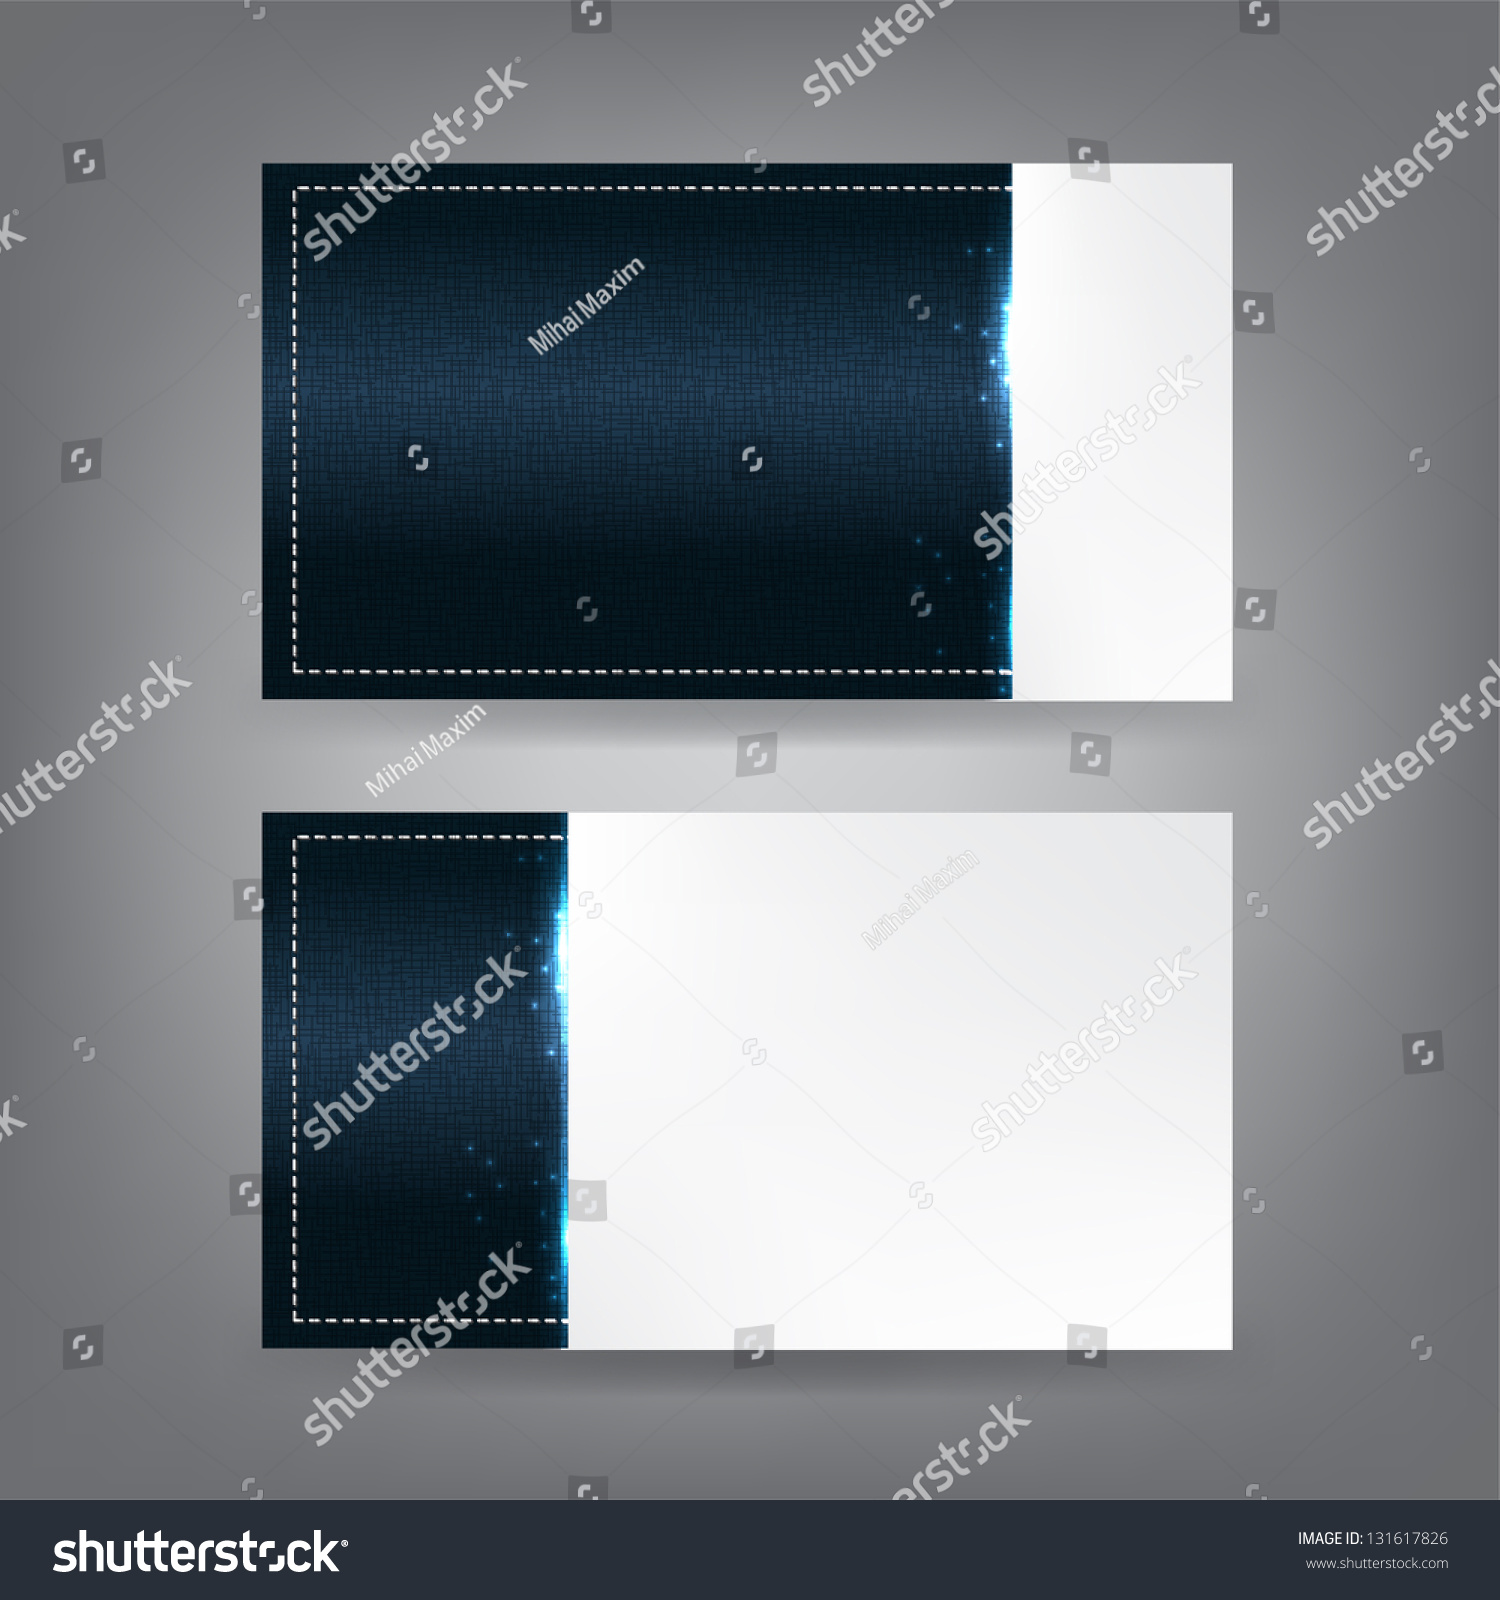 Stitched Textile Sparks Theme Business Card Stock Illustration ...